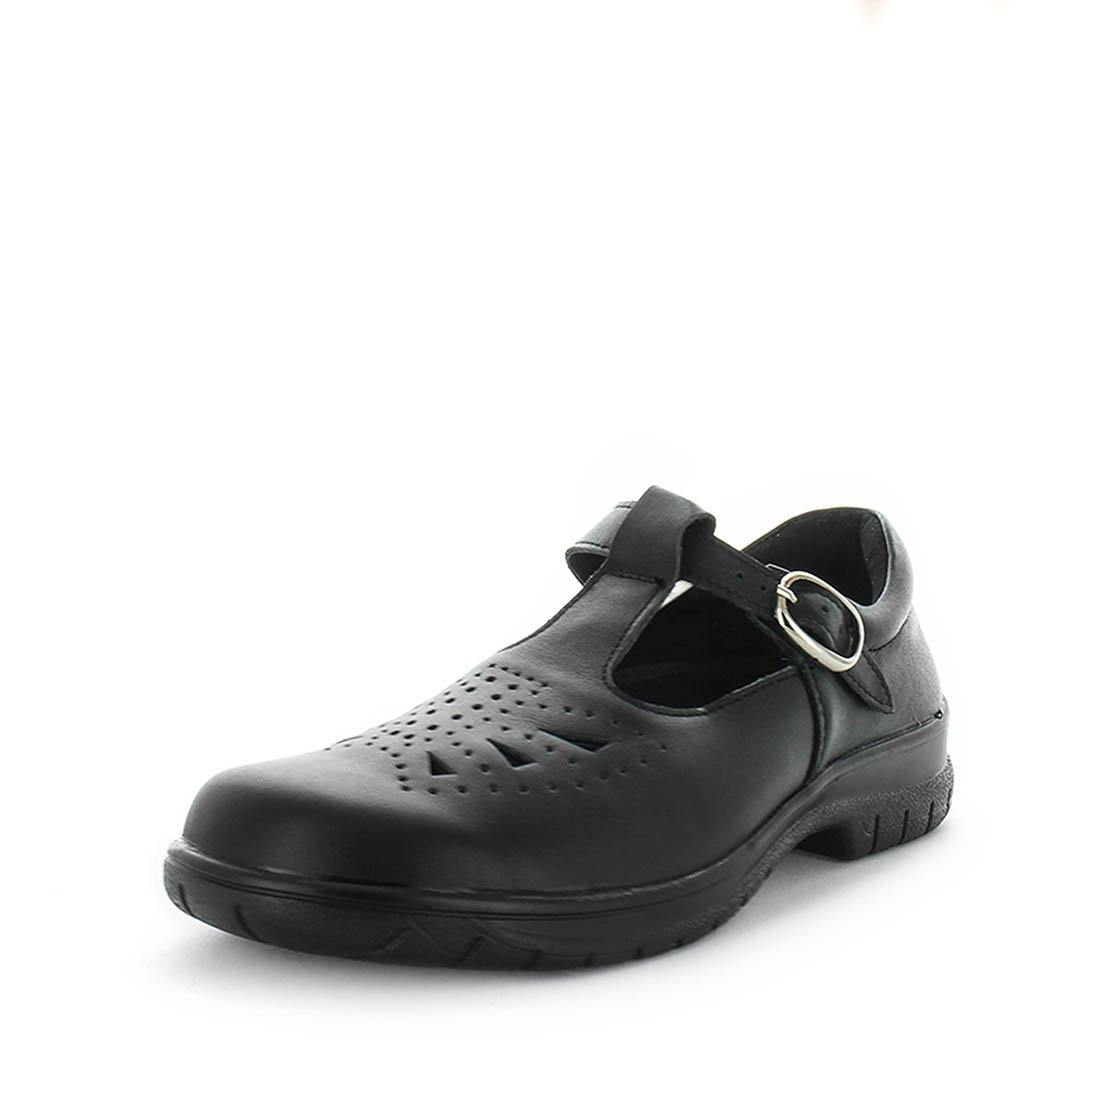 Youth school shoes, girls school shoes, leather school shoes, strapped school shoes